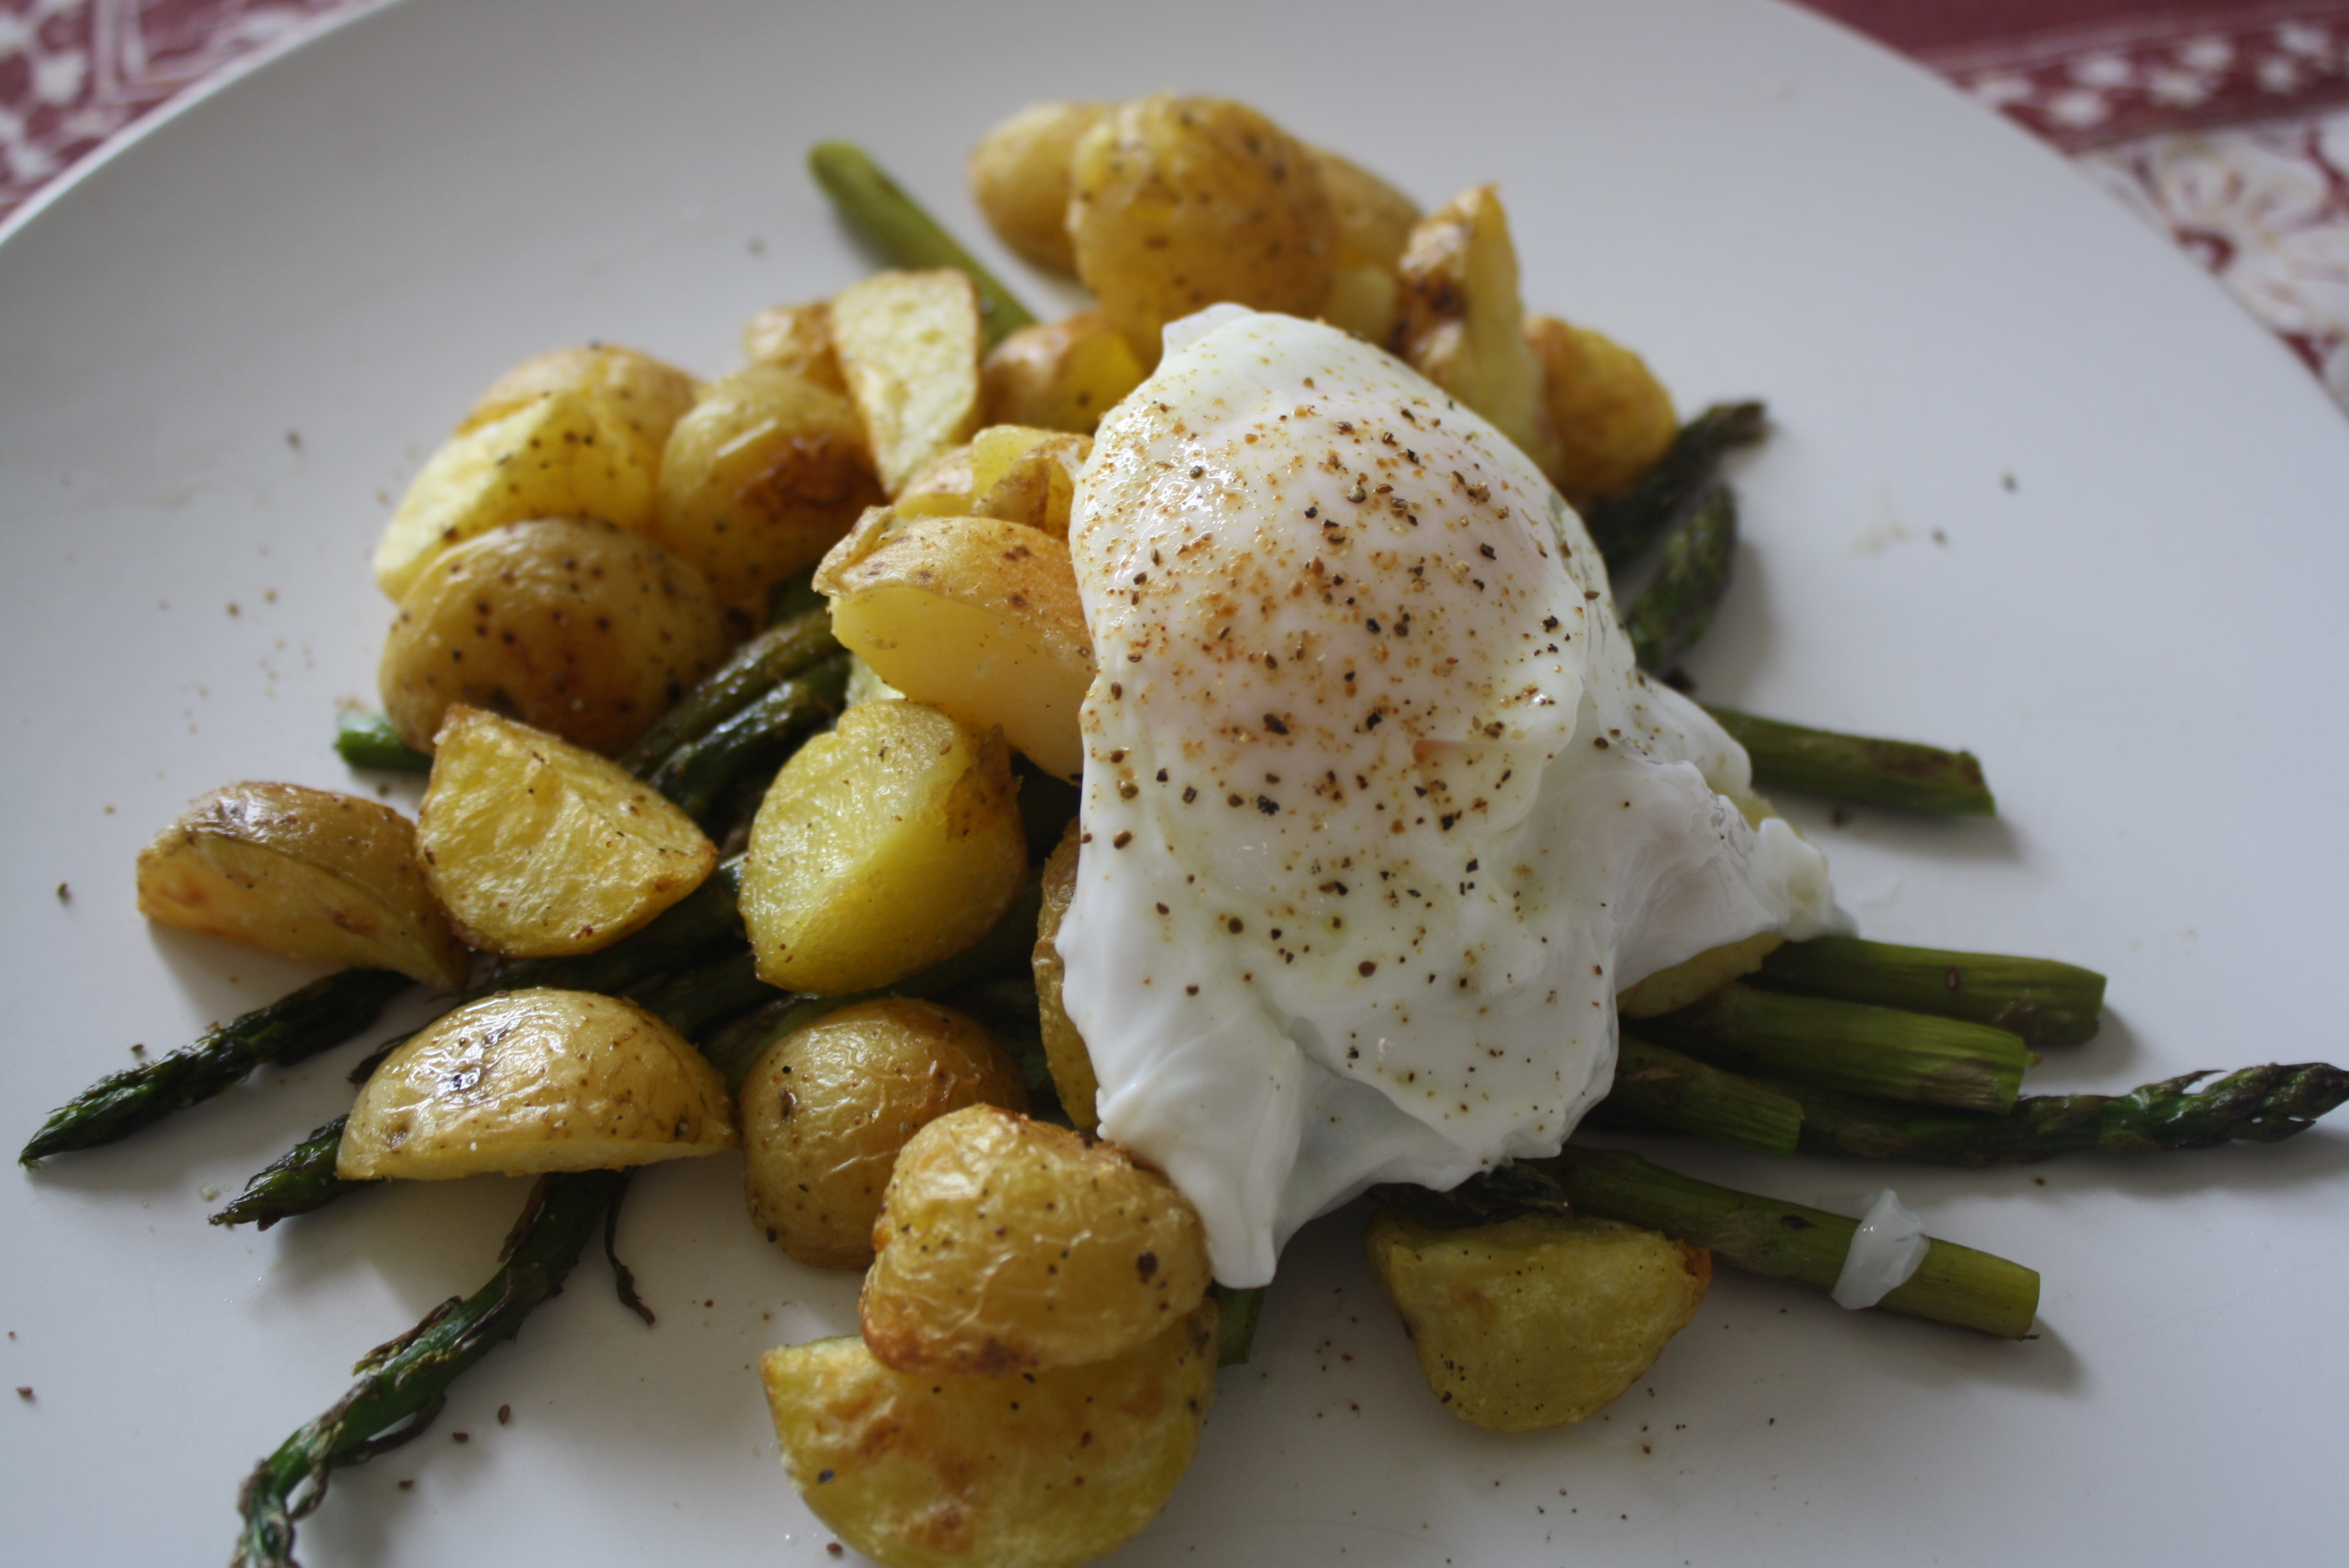 Roasted Potatoes And Asparagus With Poached Eggs | The Carnivore ...